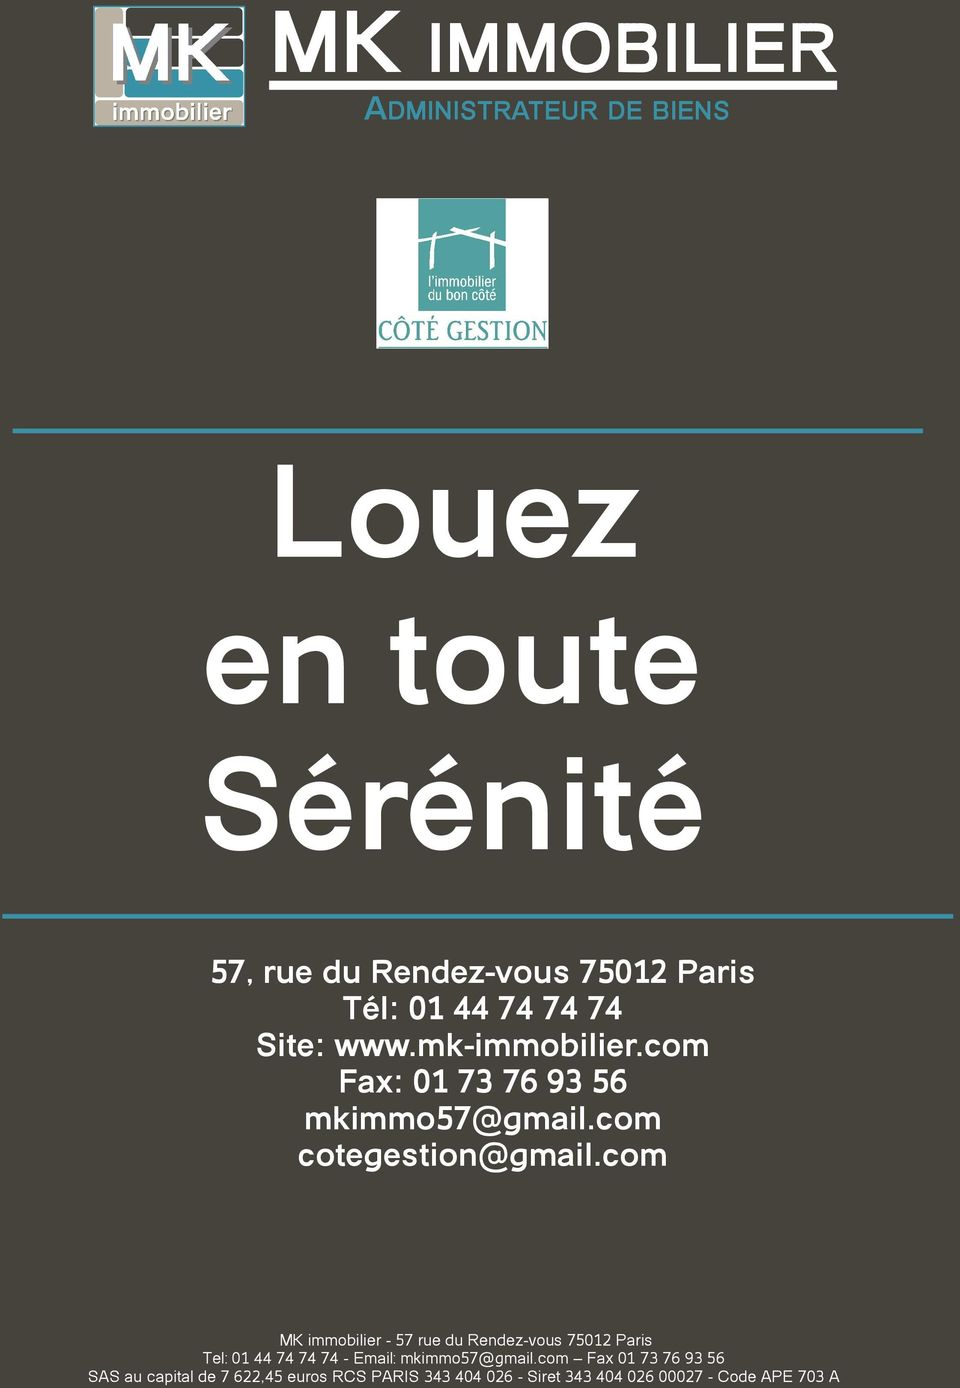 Site: www.mk-immobilier.com Fax: 01 73 76 93 56 mkimmo57@gmail.com cotegestion@gmail.